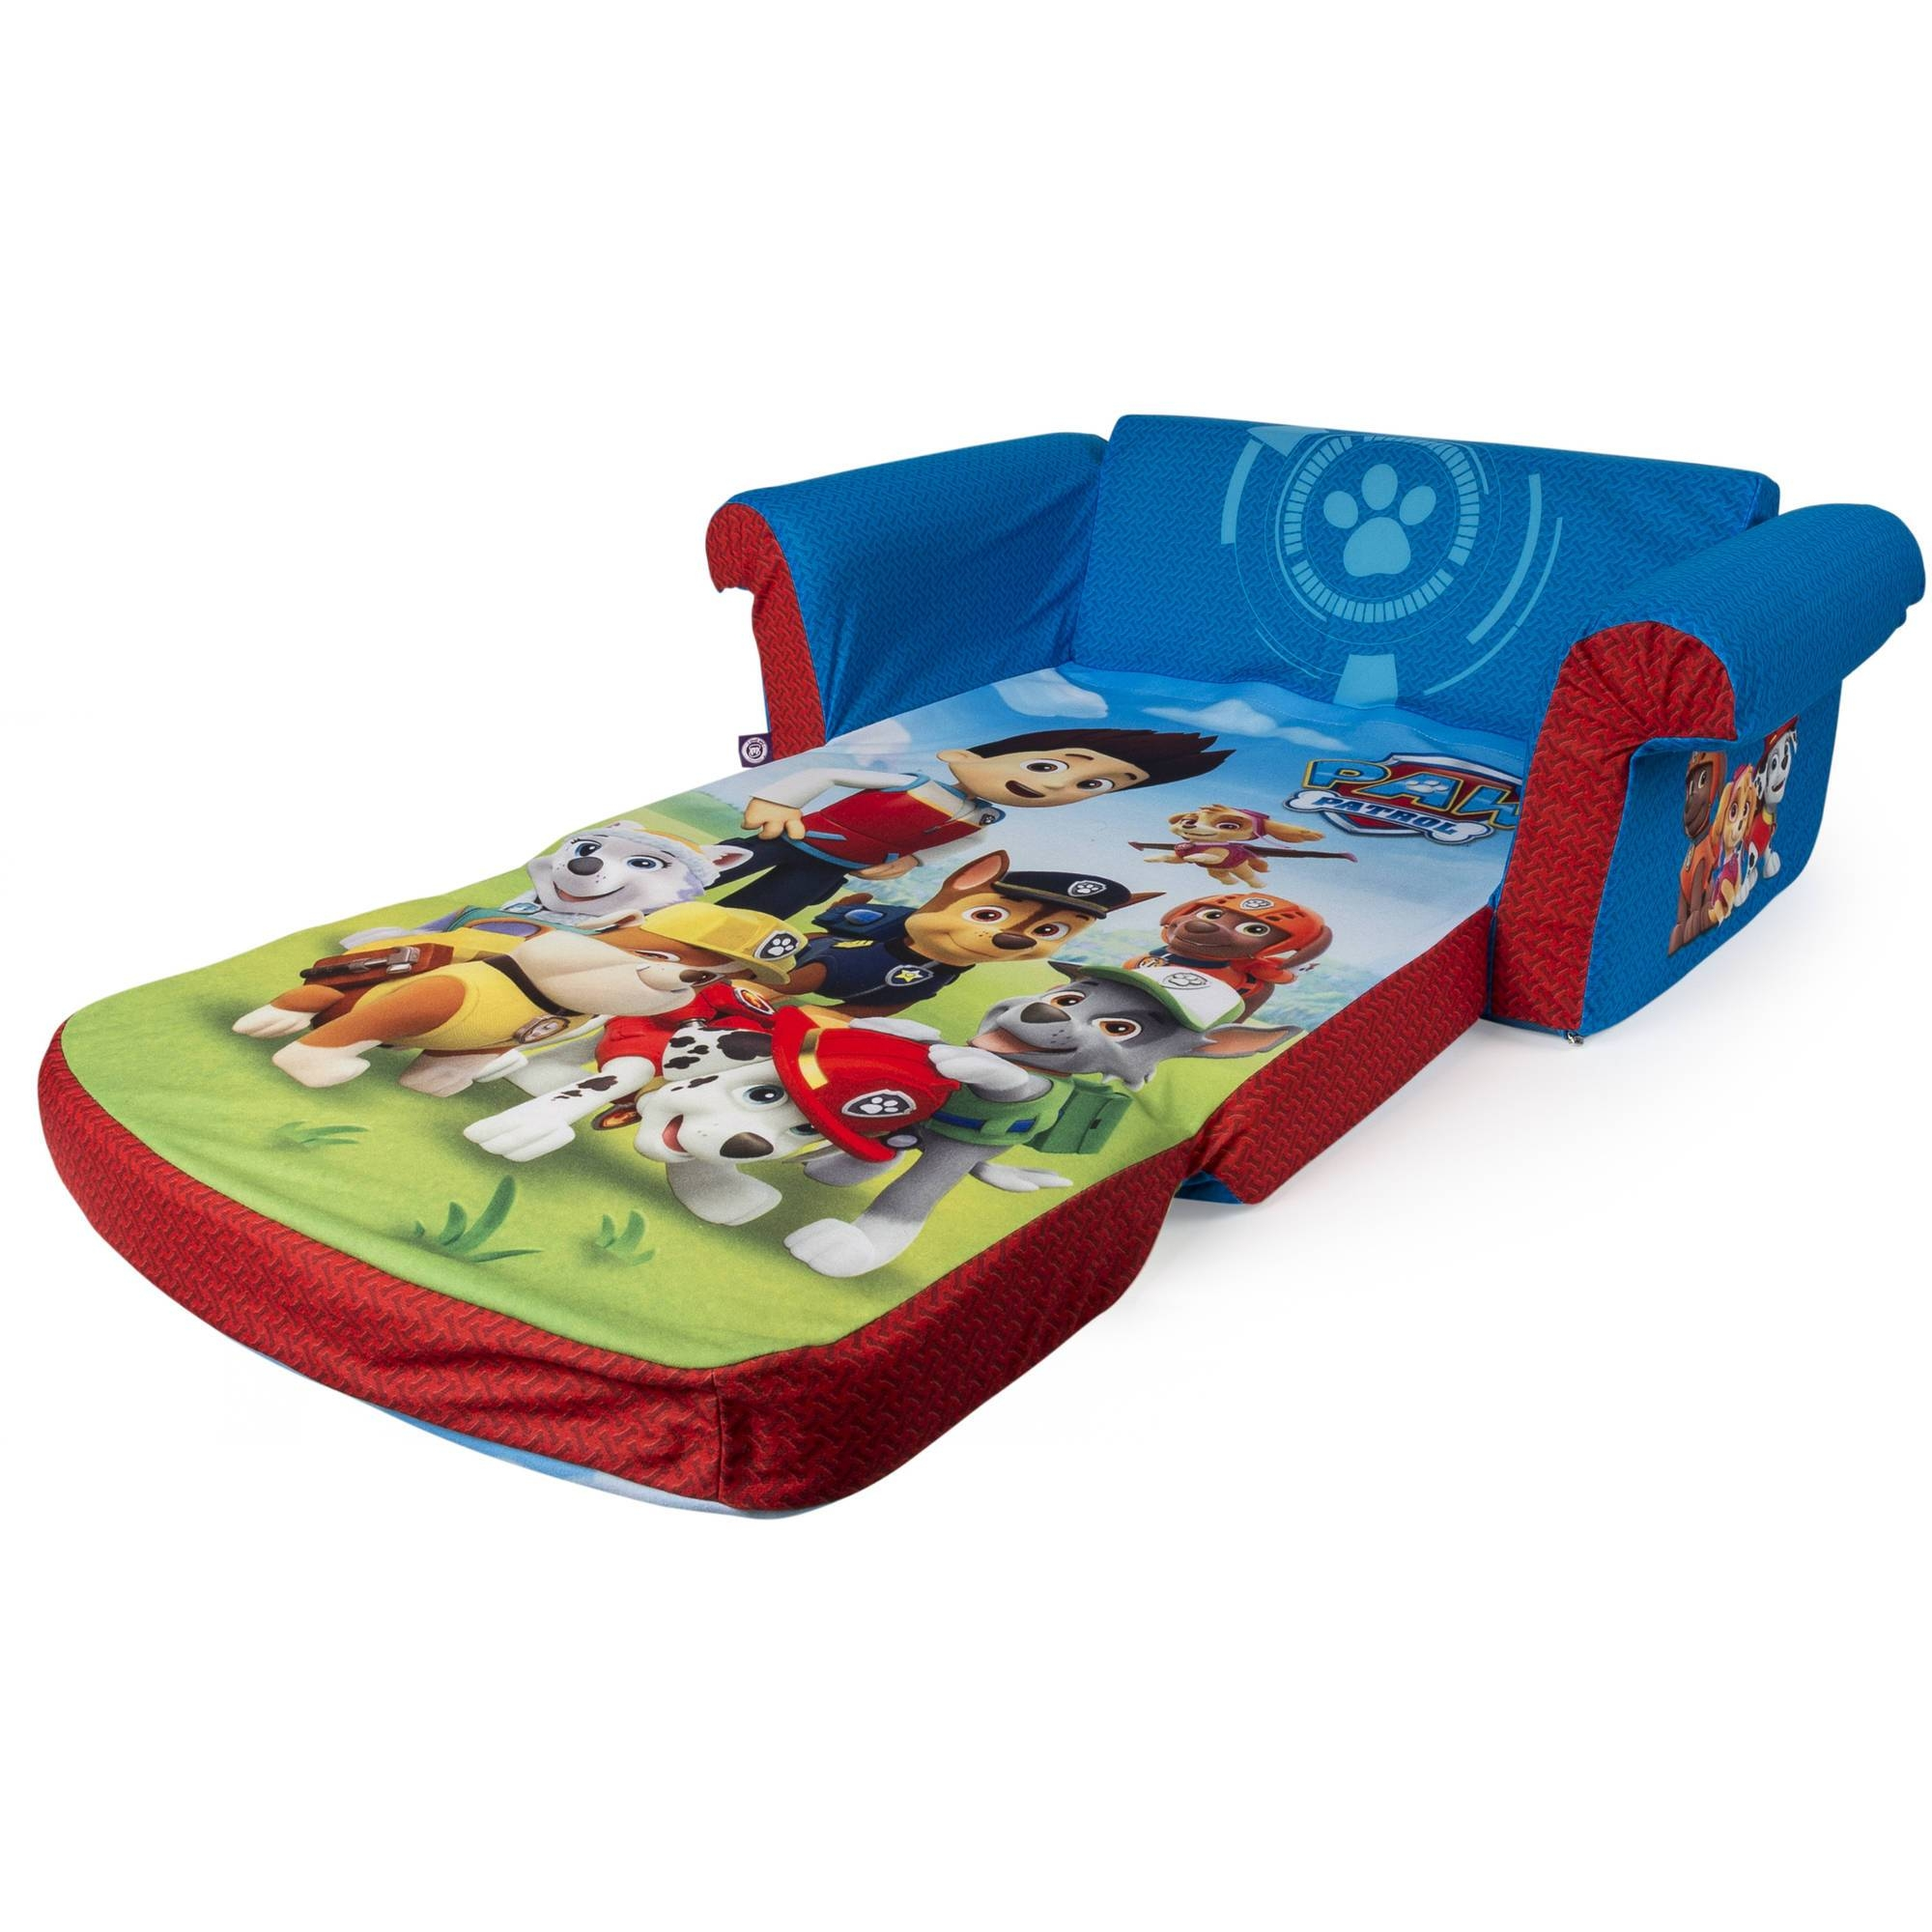 Marshmallow Furniture, Children's 2 In 1 Flip Open Foam Sofa pertaining to Flip Open Kids Sofas (Image 8 of 15)